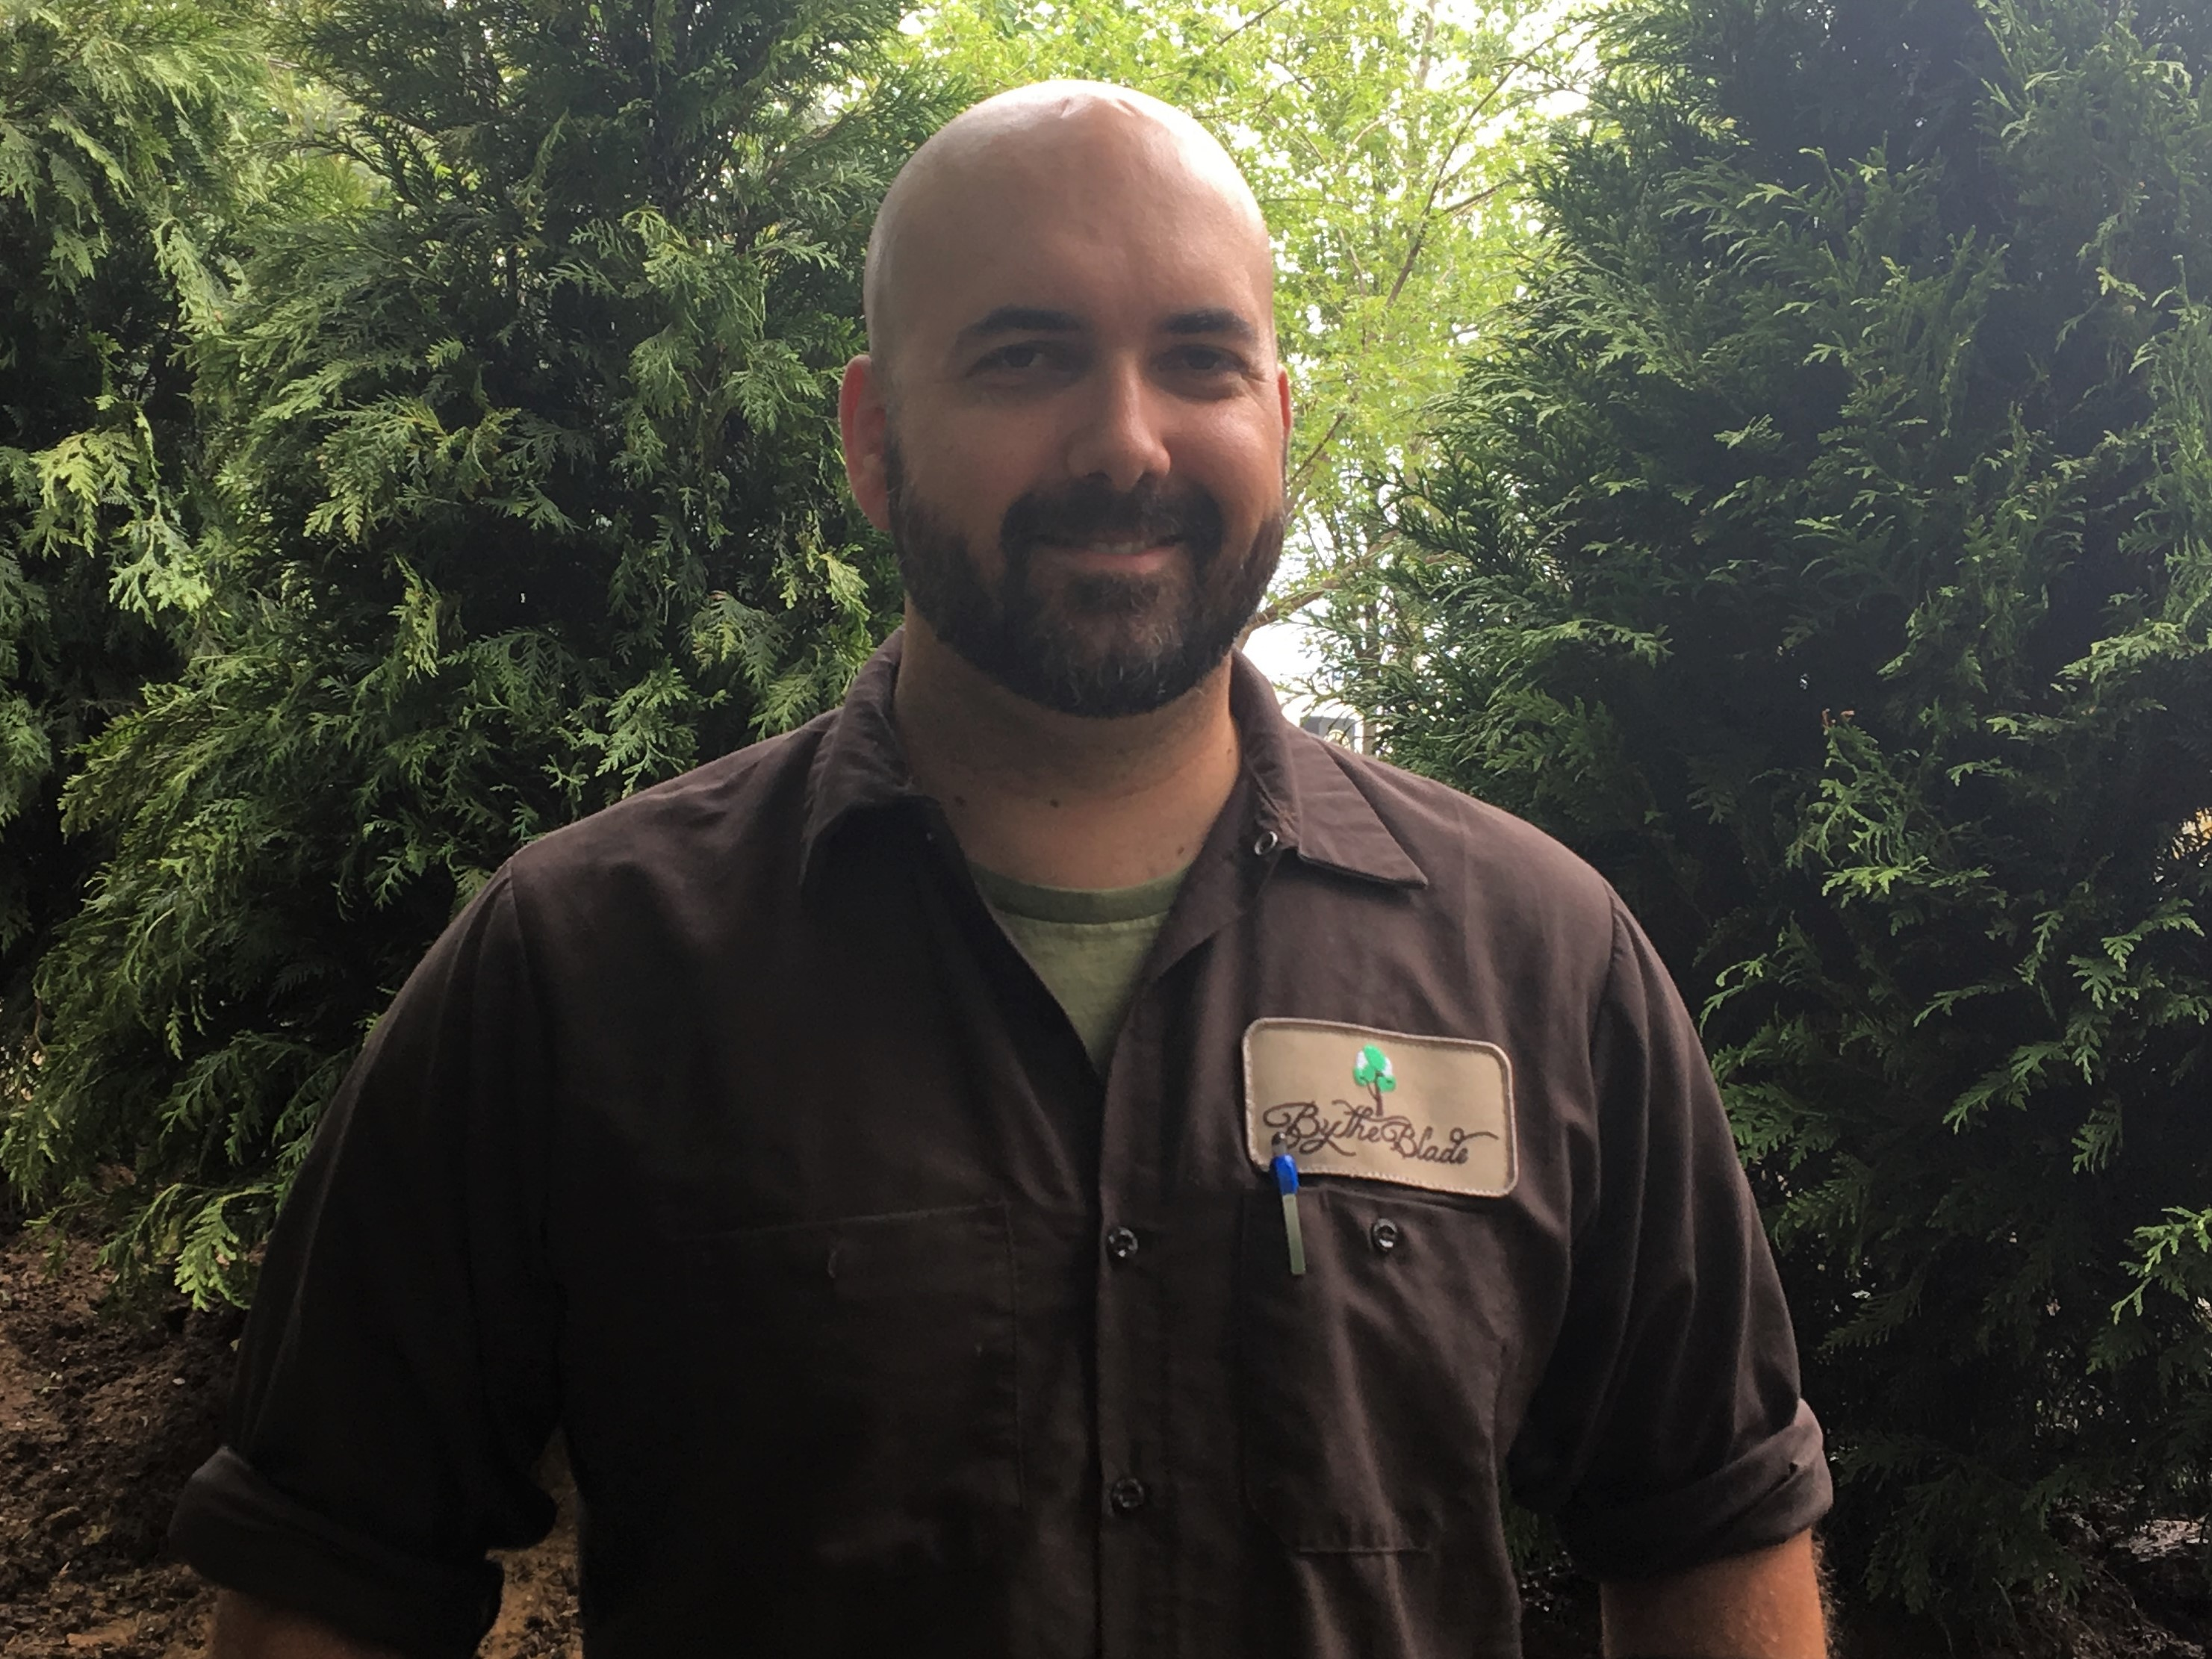 Meet Kyle Oothout, Lawnscape Manager, 3 years